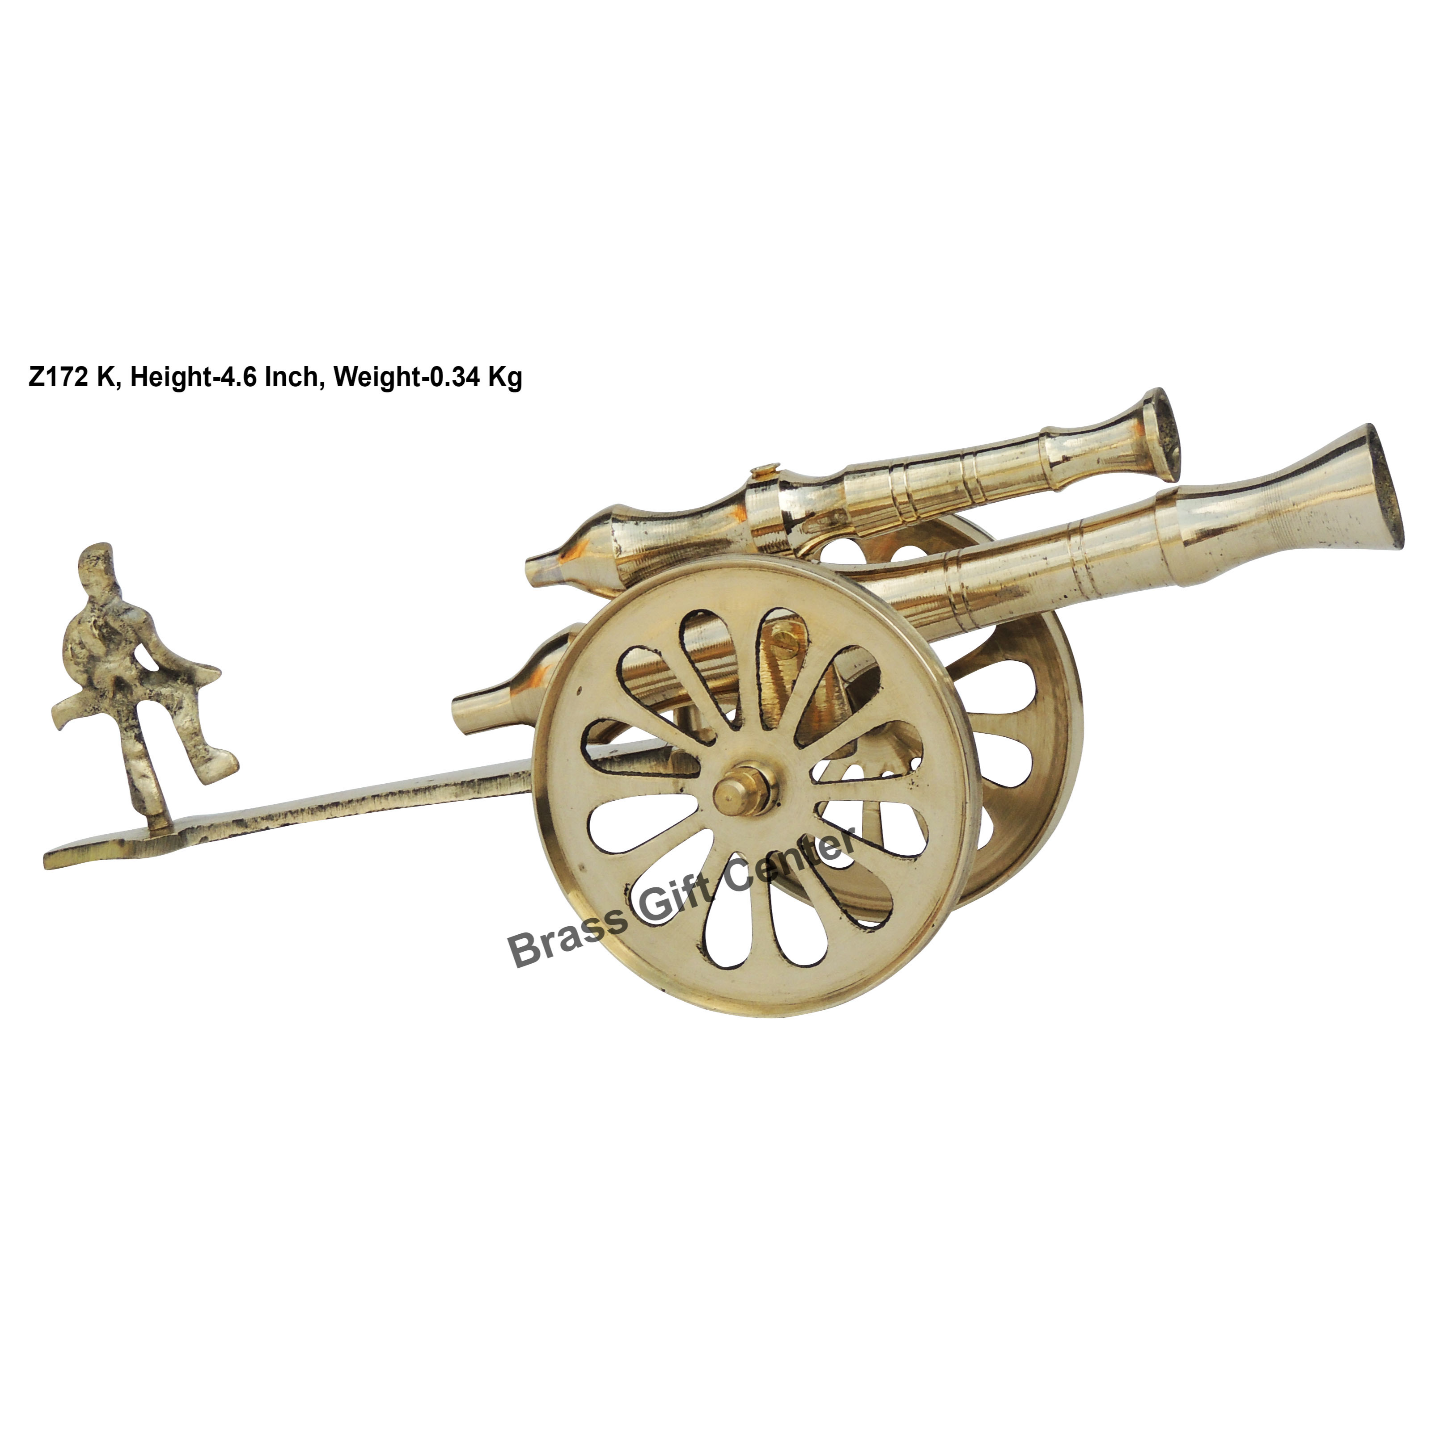 Brass Small Toop Cannon No 12 - 10.8*3.6*4.6 Inch  (Z172 K)